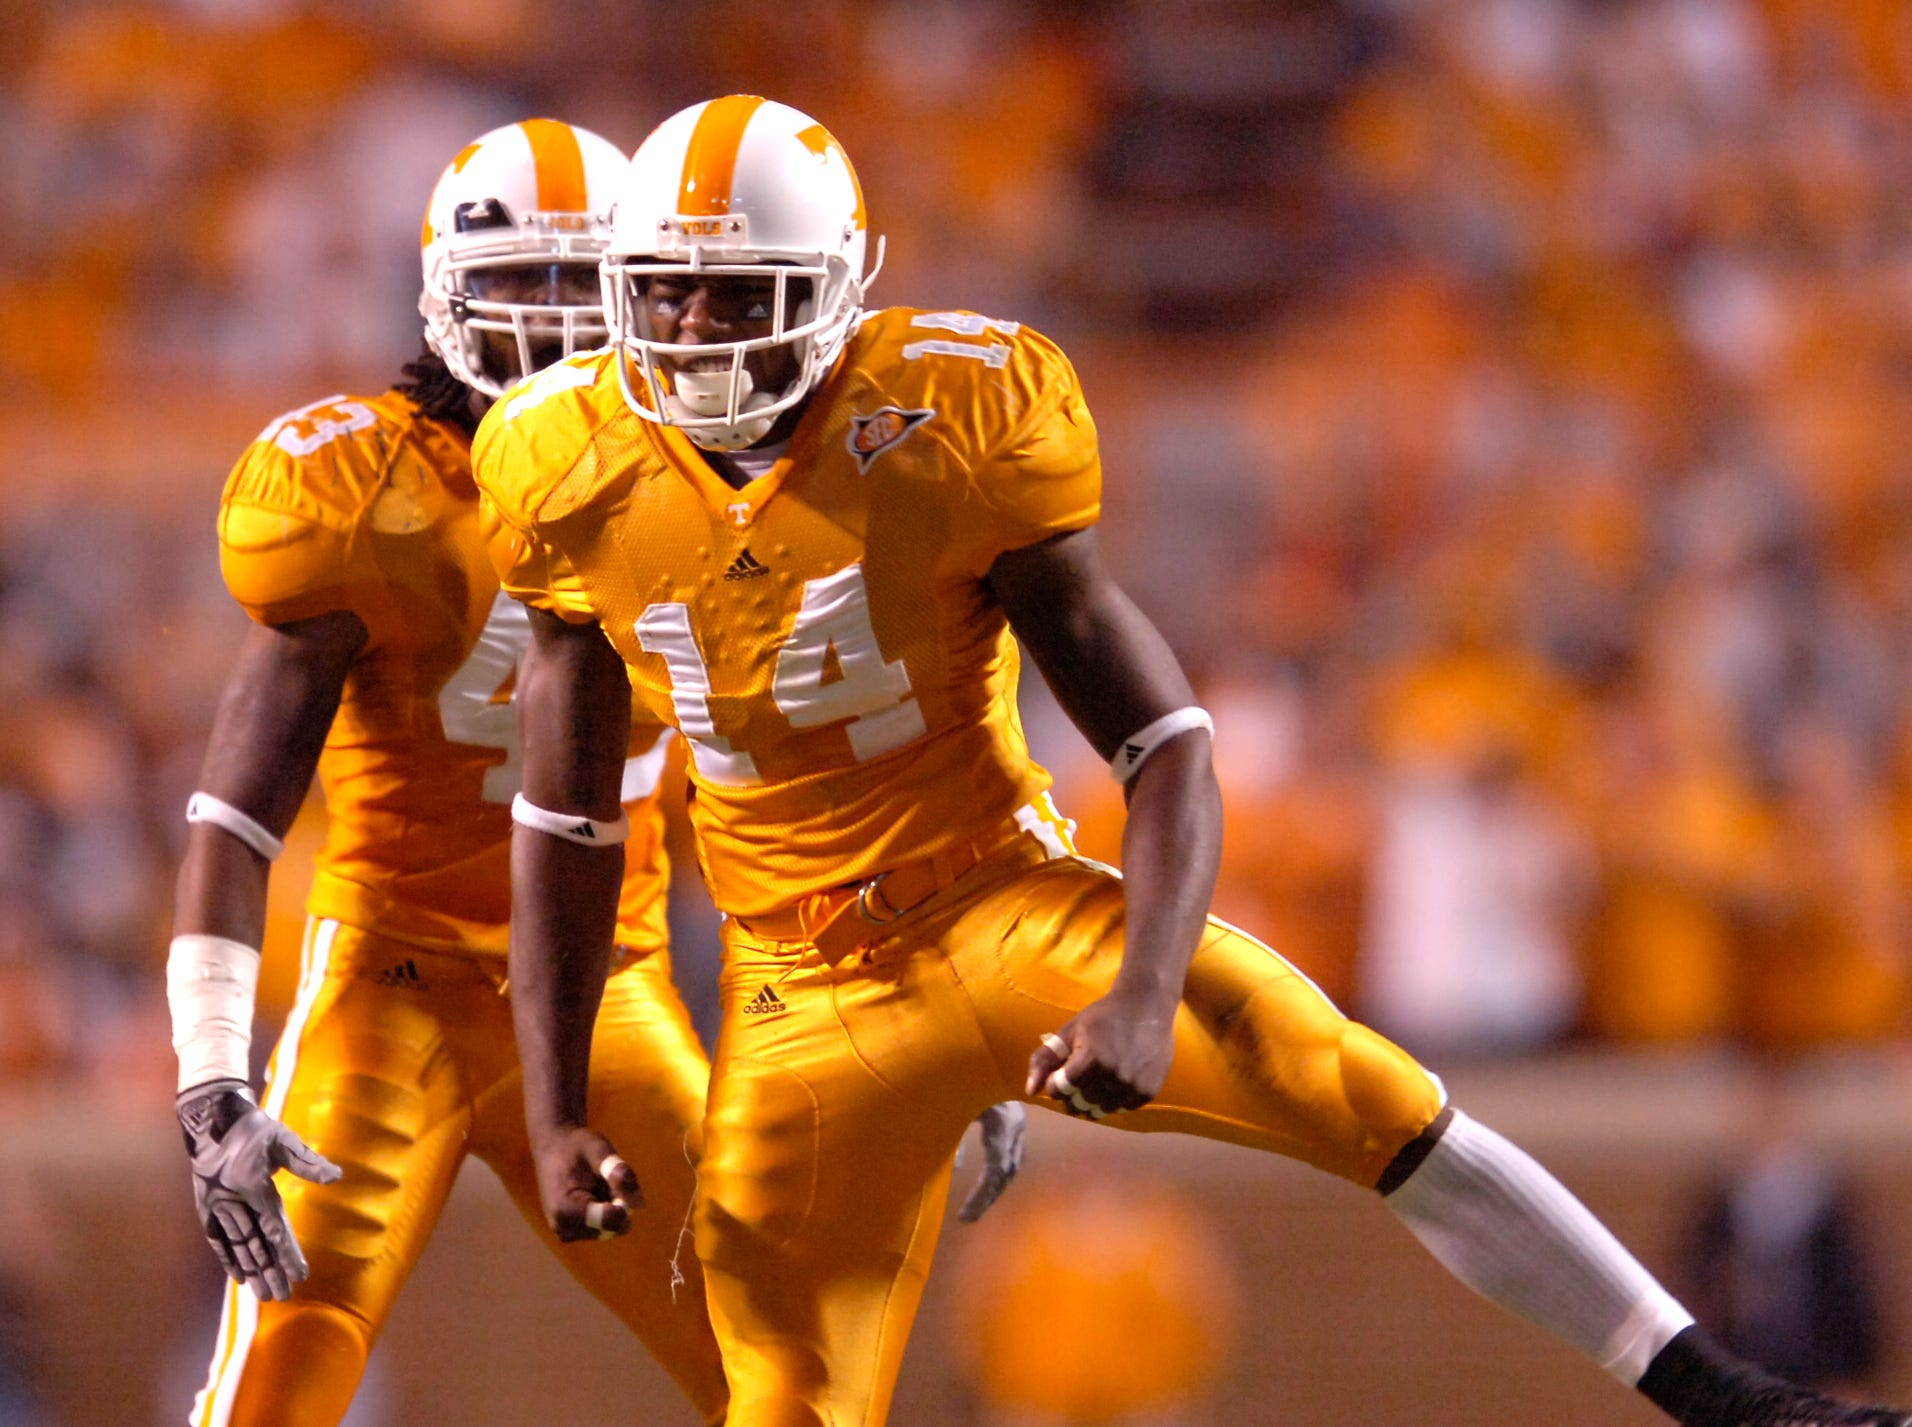 Tennessee cornerback Eric Berry (14) celebrates after stopping the Auburn offense with linebacker Savion Frazier (43) on Saturday, October 3rd, 2009 at Neyland Stadium.